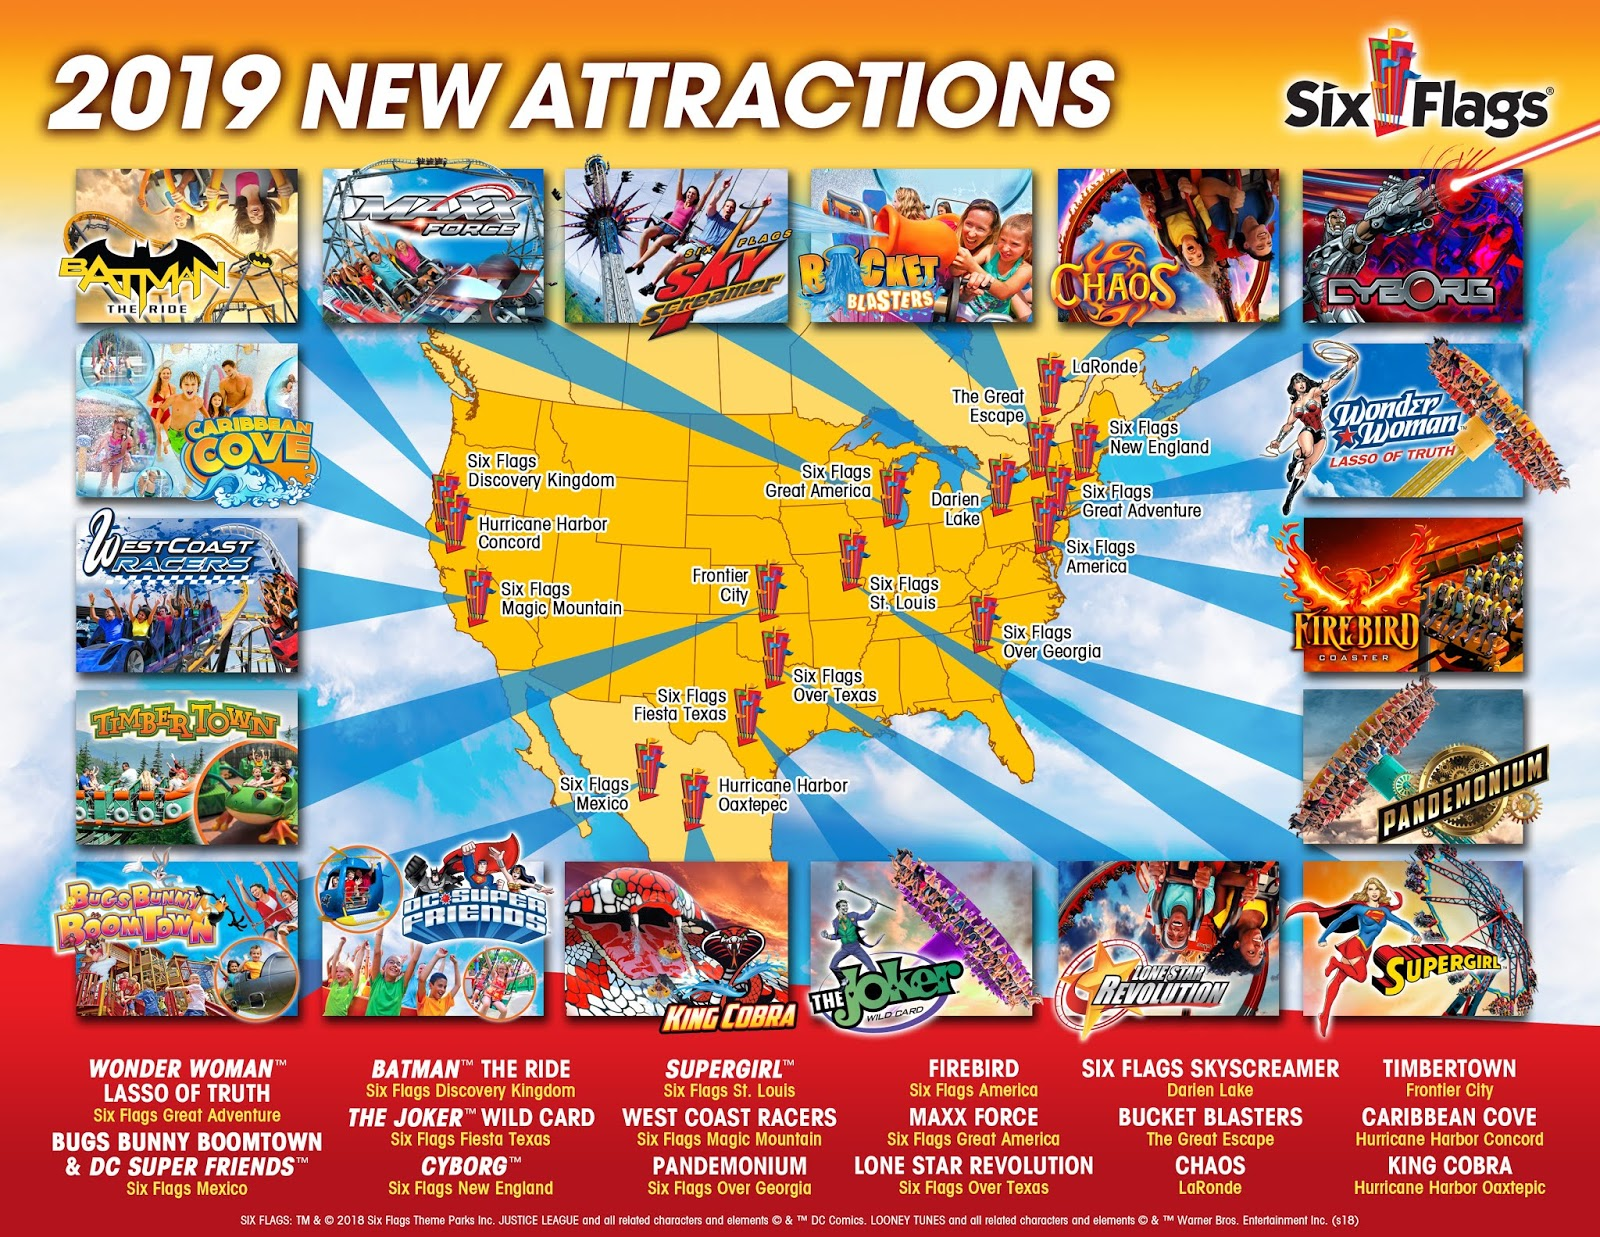 EVERY 2019 Six Flags New Attraction Confirmed - New Rides ... on six flags nj map, magic springs and crystal falls map, dorney park map, washington street mall map, kingda ka map, mt. olympus water & theme park map, kiddieland map, kennywood map, holiday world santa claus indiana map, the gallery at market east map, penn hills resort map, knott's berry farm map, magic kingdom map, 2014 six flags magic mountain map, great america map, cedar point map, thorpe park map, wyandot lake map, big e fair map, 2014 six flags over georgia map,